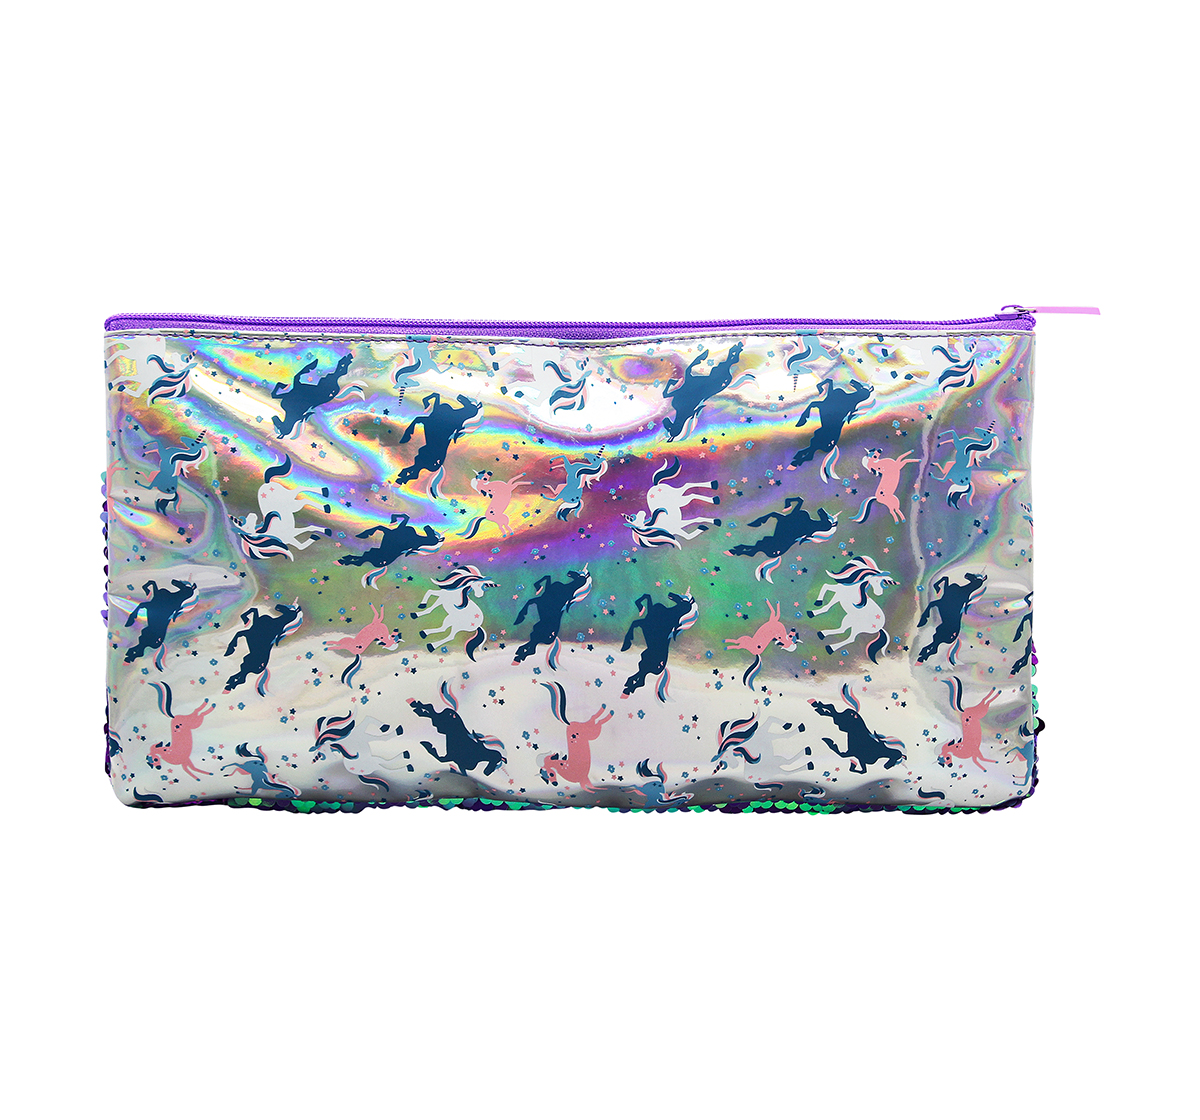 Hamster London | Hamster London Unicorn Sequin Pouch for Girls age 3Y+ (Purple)